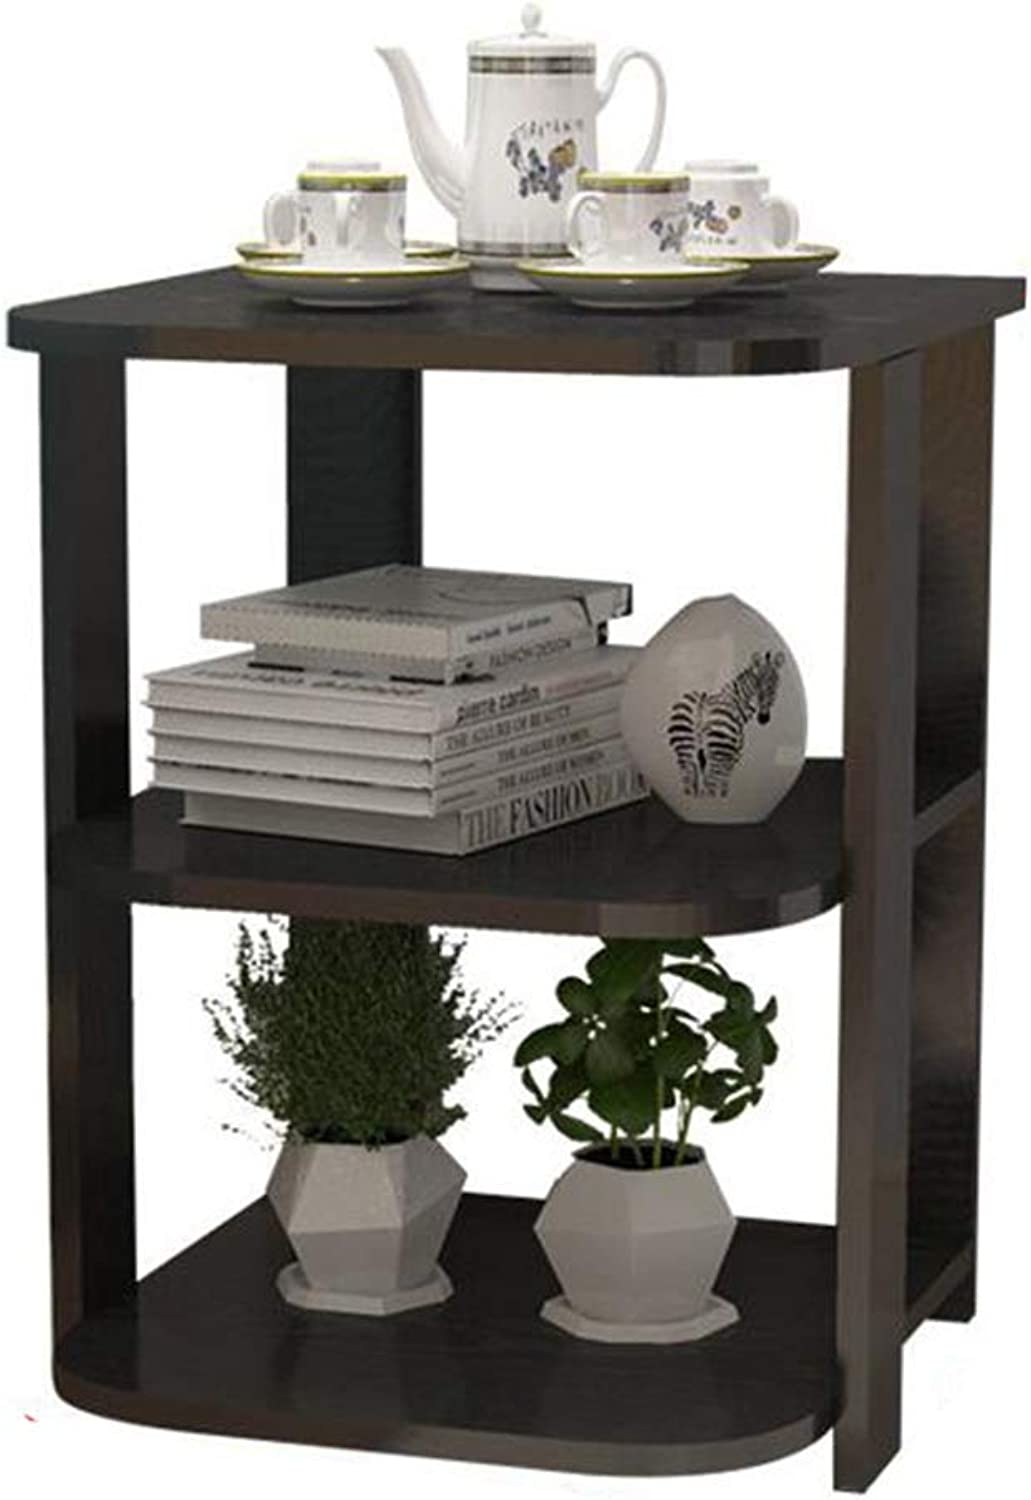 Tables Side Composite Wood Board, Nightstand Couch Table Living Room Balcony Office, 2-Tier Shelf LIUNA (color   Black)